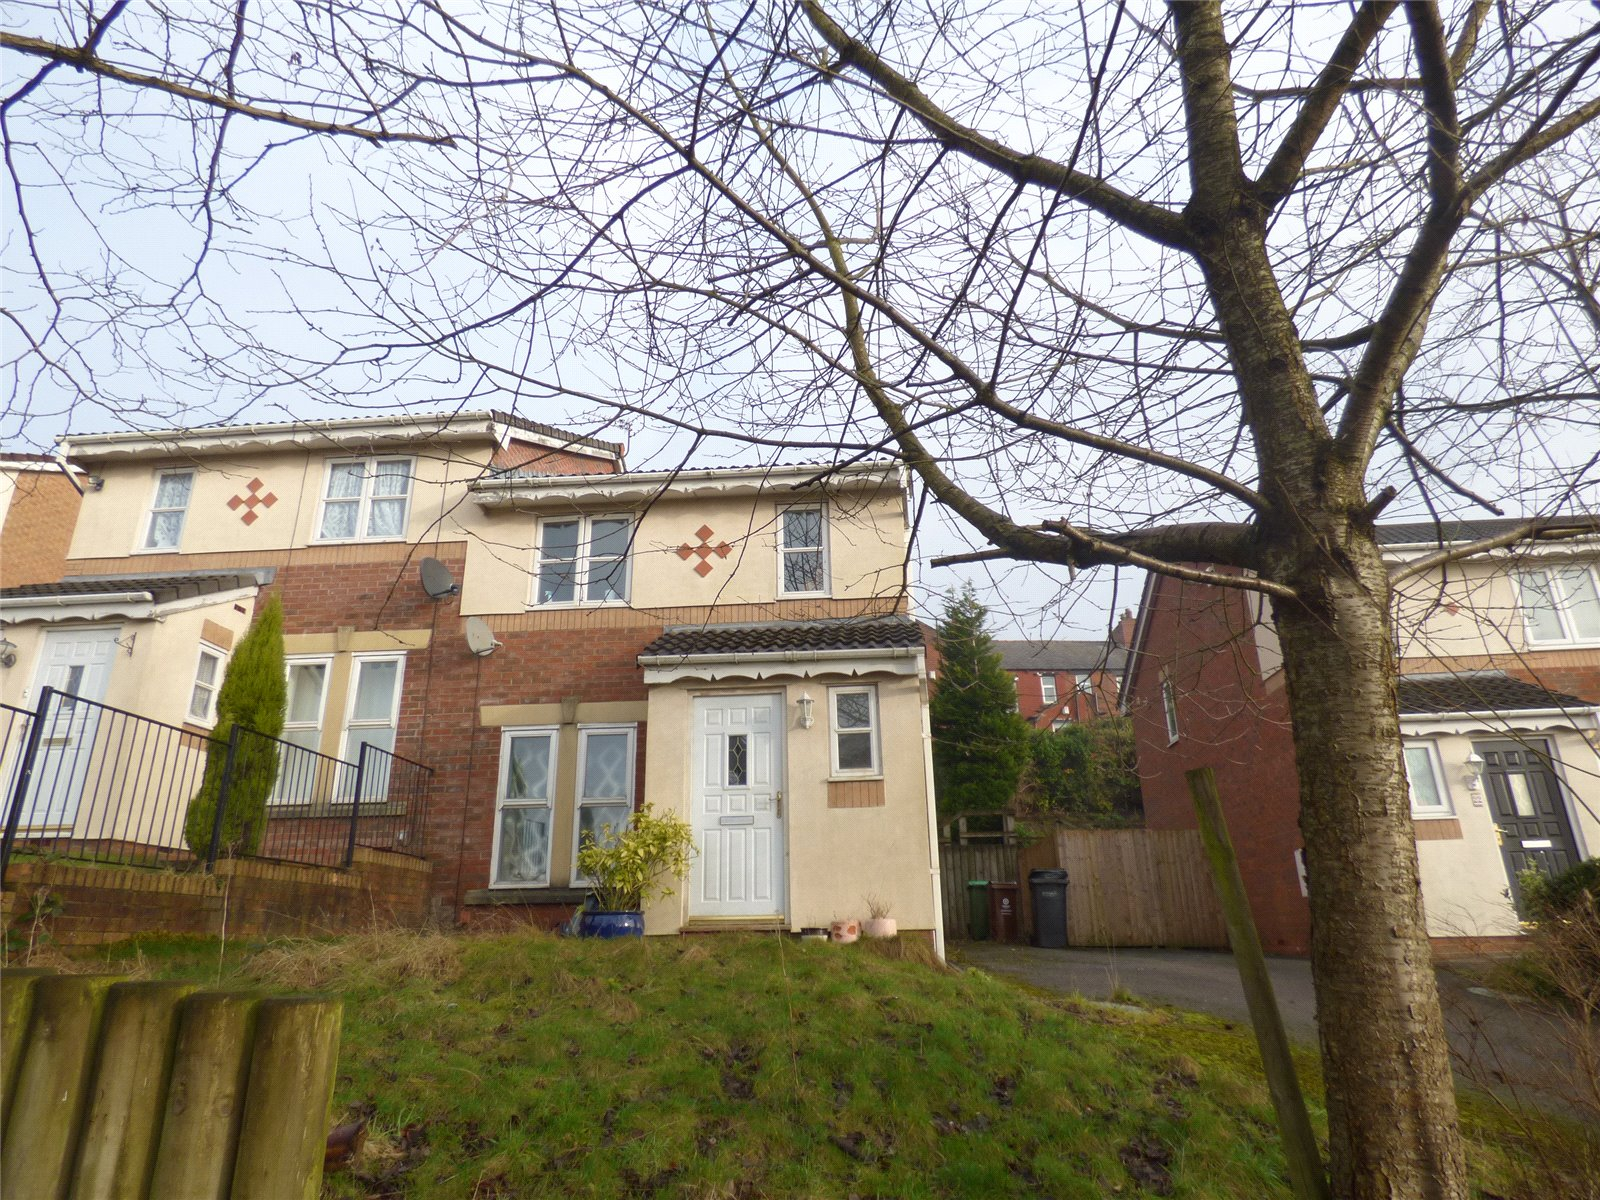 4 Bedrooms Semi Detached House for sale in Hurstwood Close, Cherry Tree Gardens, Oldham, Greater Manchester, OL8